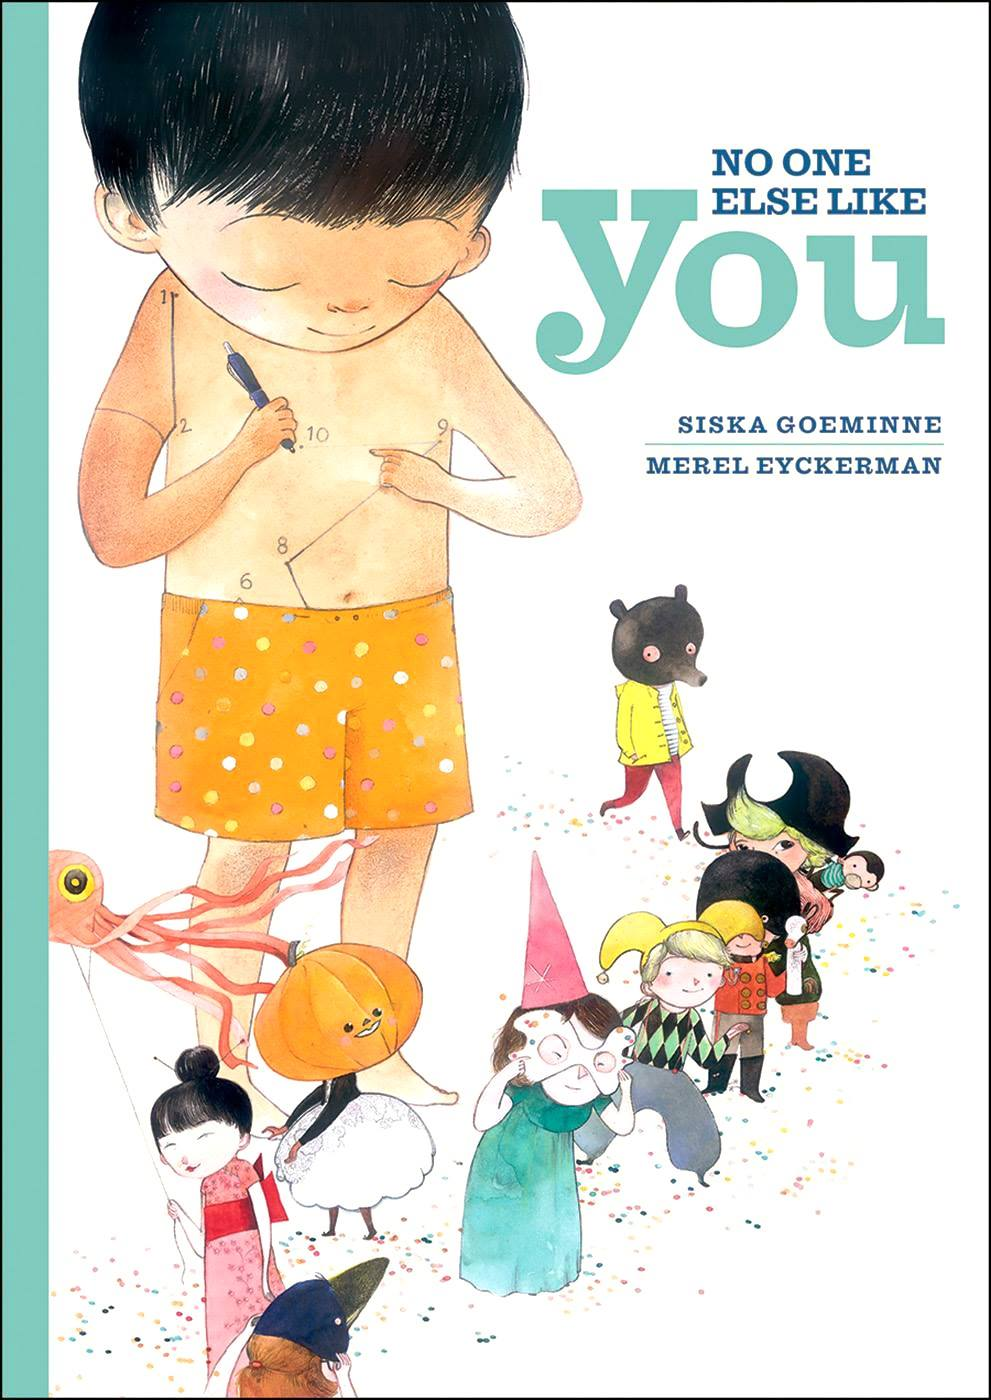 No one else like you - bibliophile review